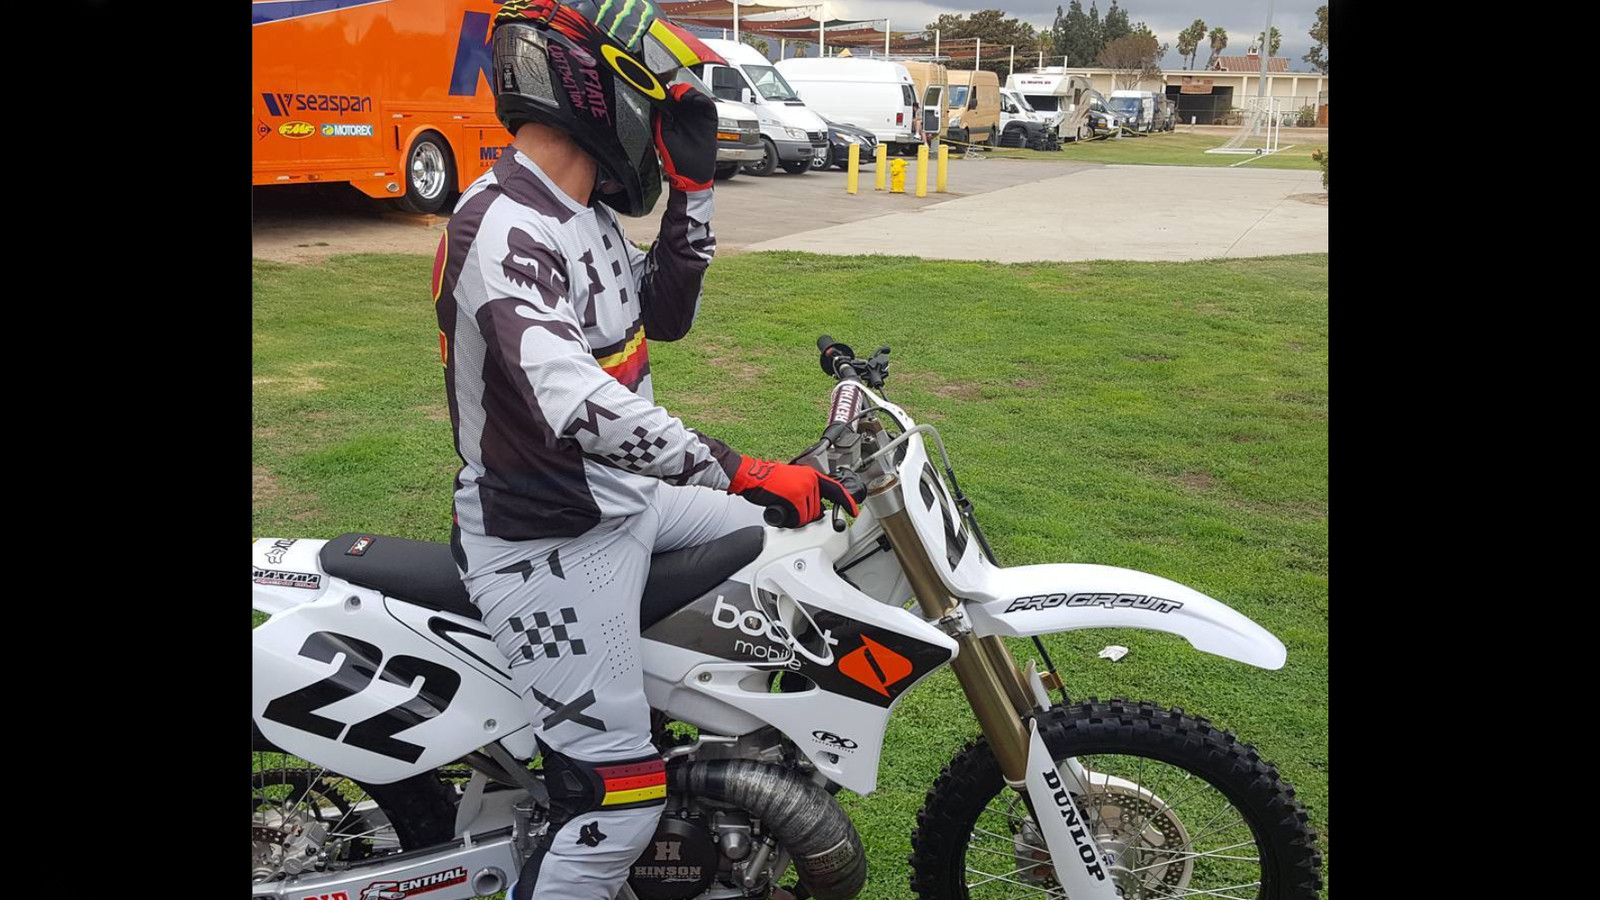 Possible Injury for Chad Reed